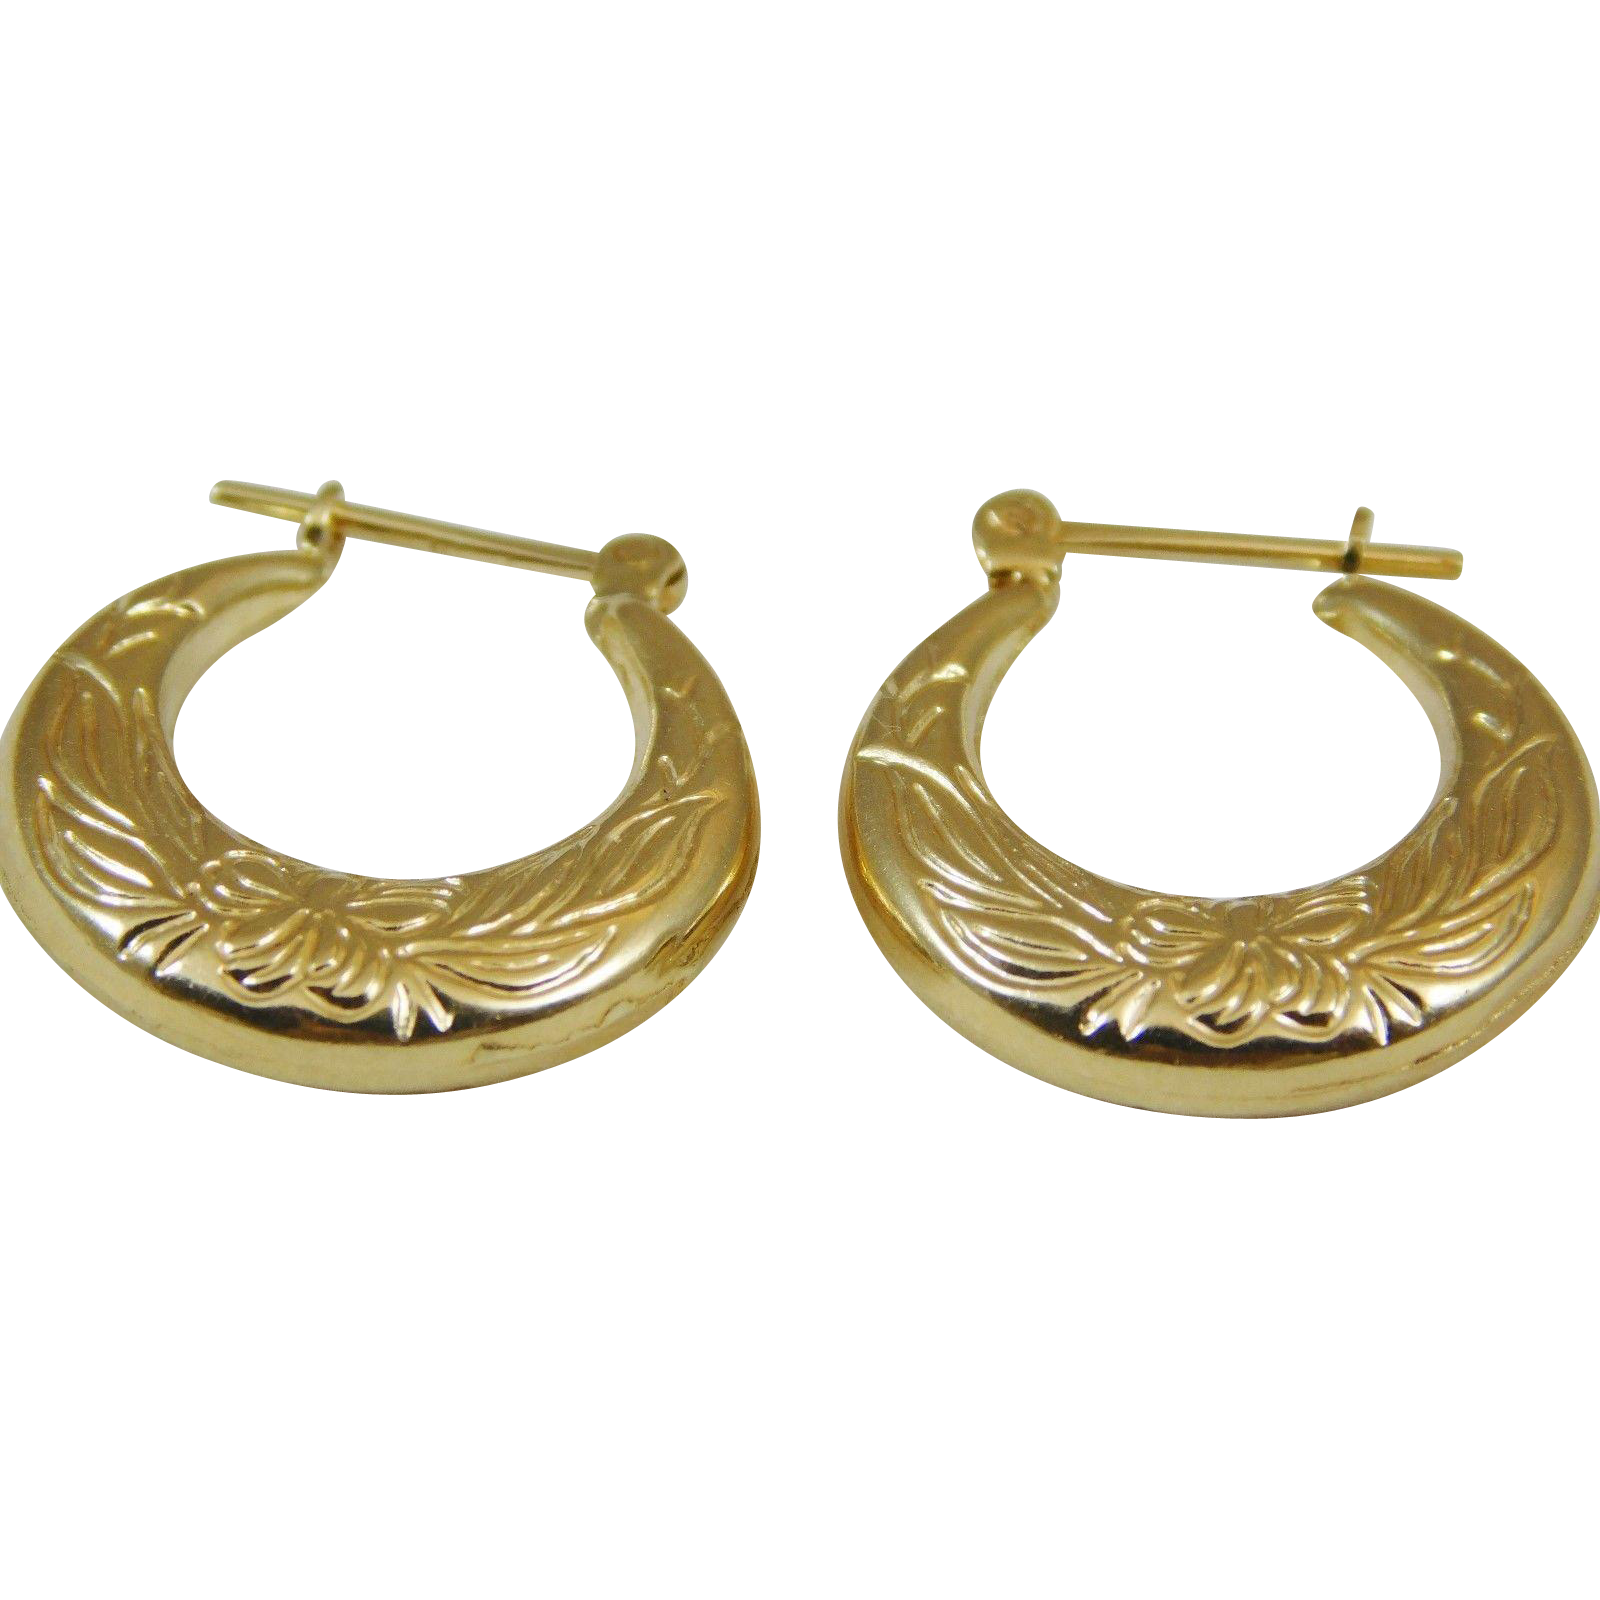 1 karat earrings 14 karat yellow gold small hoop earrings from 5326